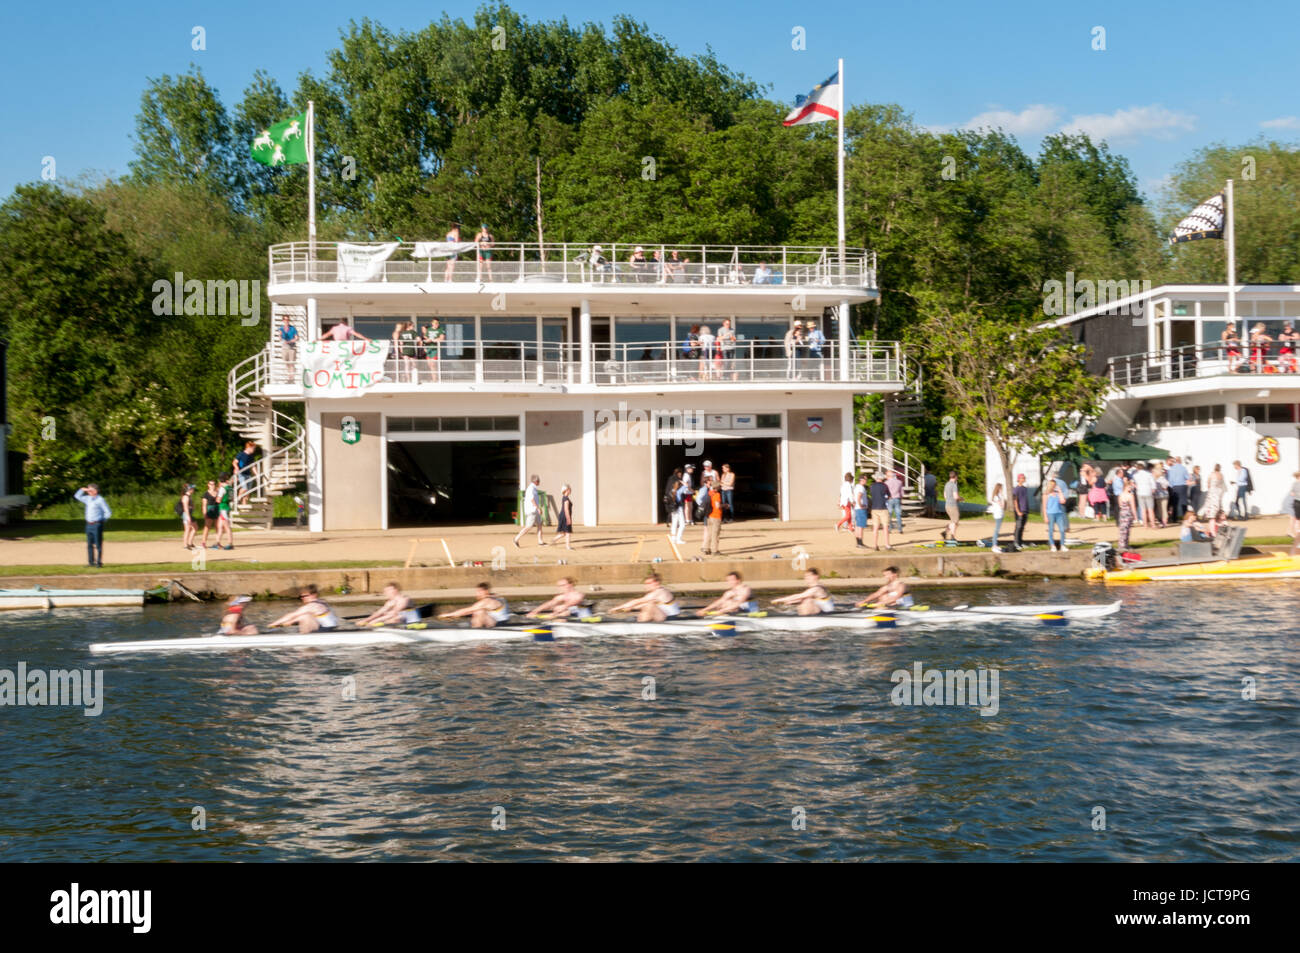 oxford-eights-boat-races-oxford-united-kingdom-JCT9PG.jpg